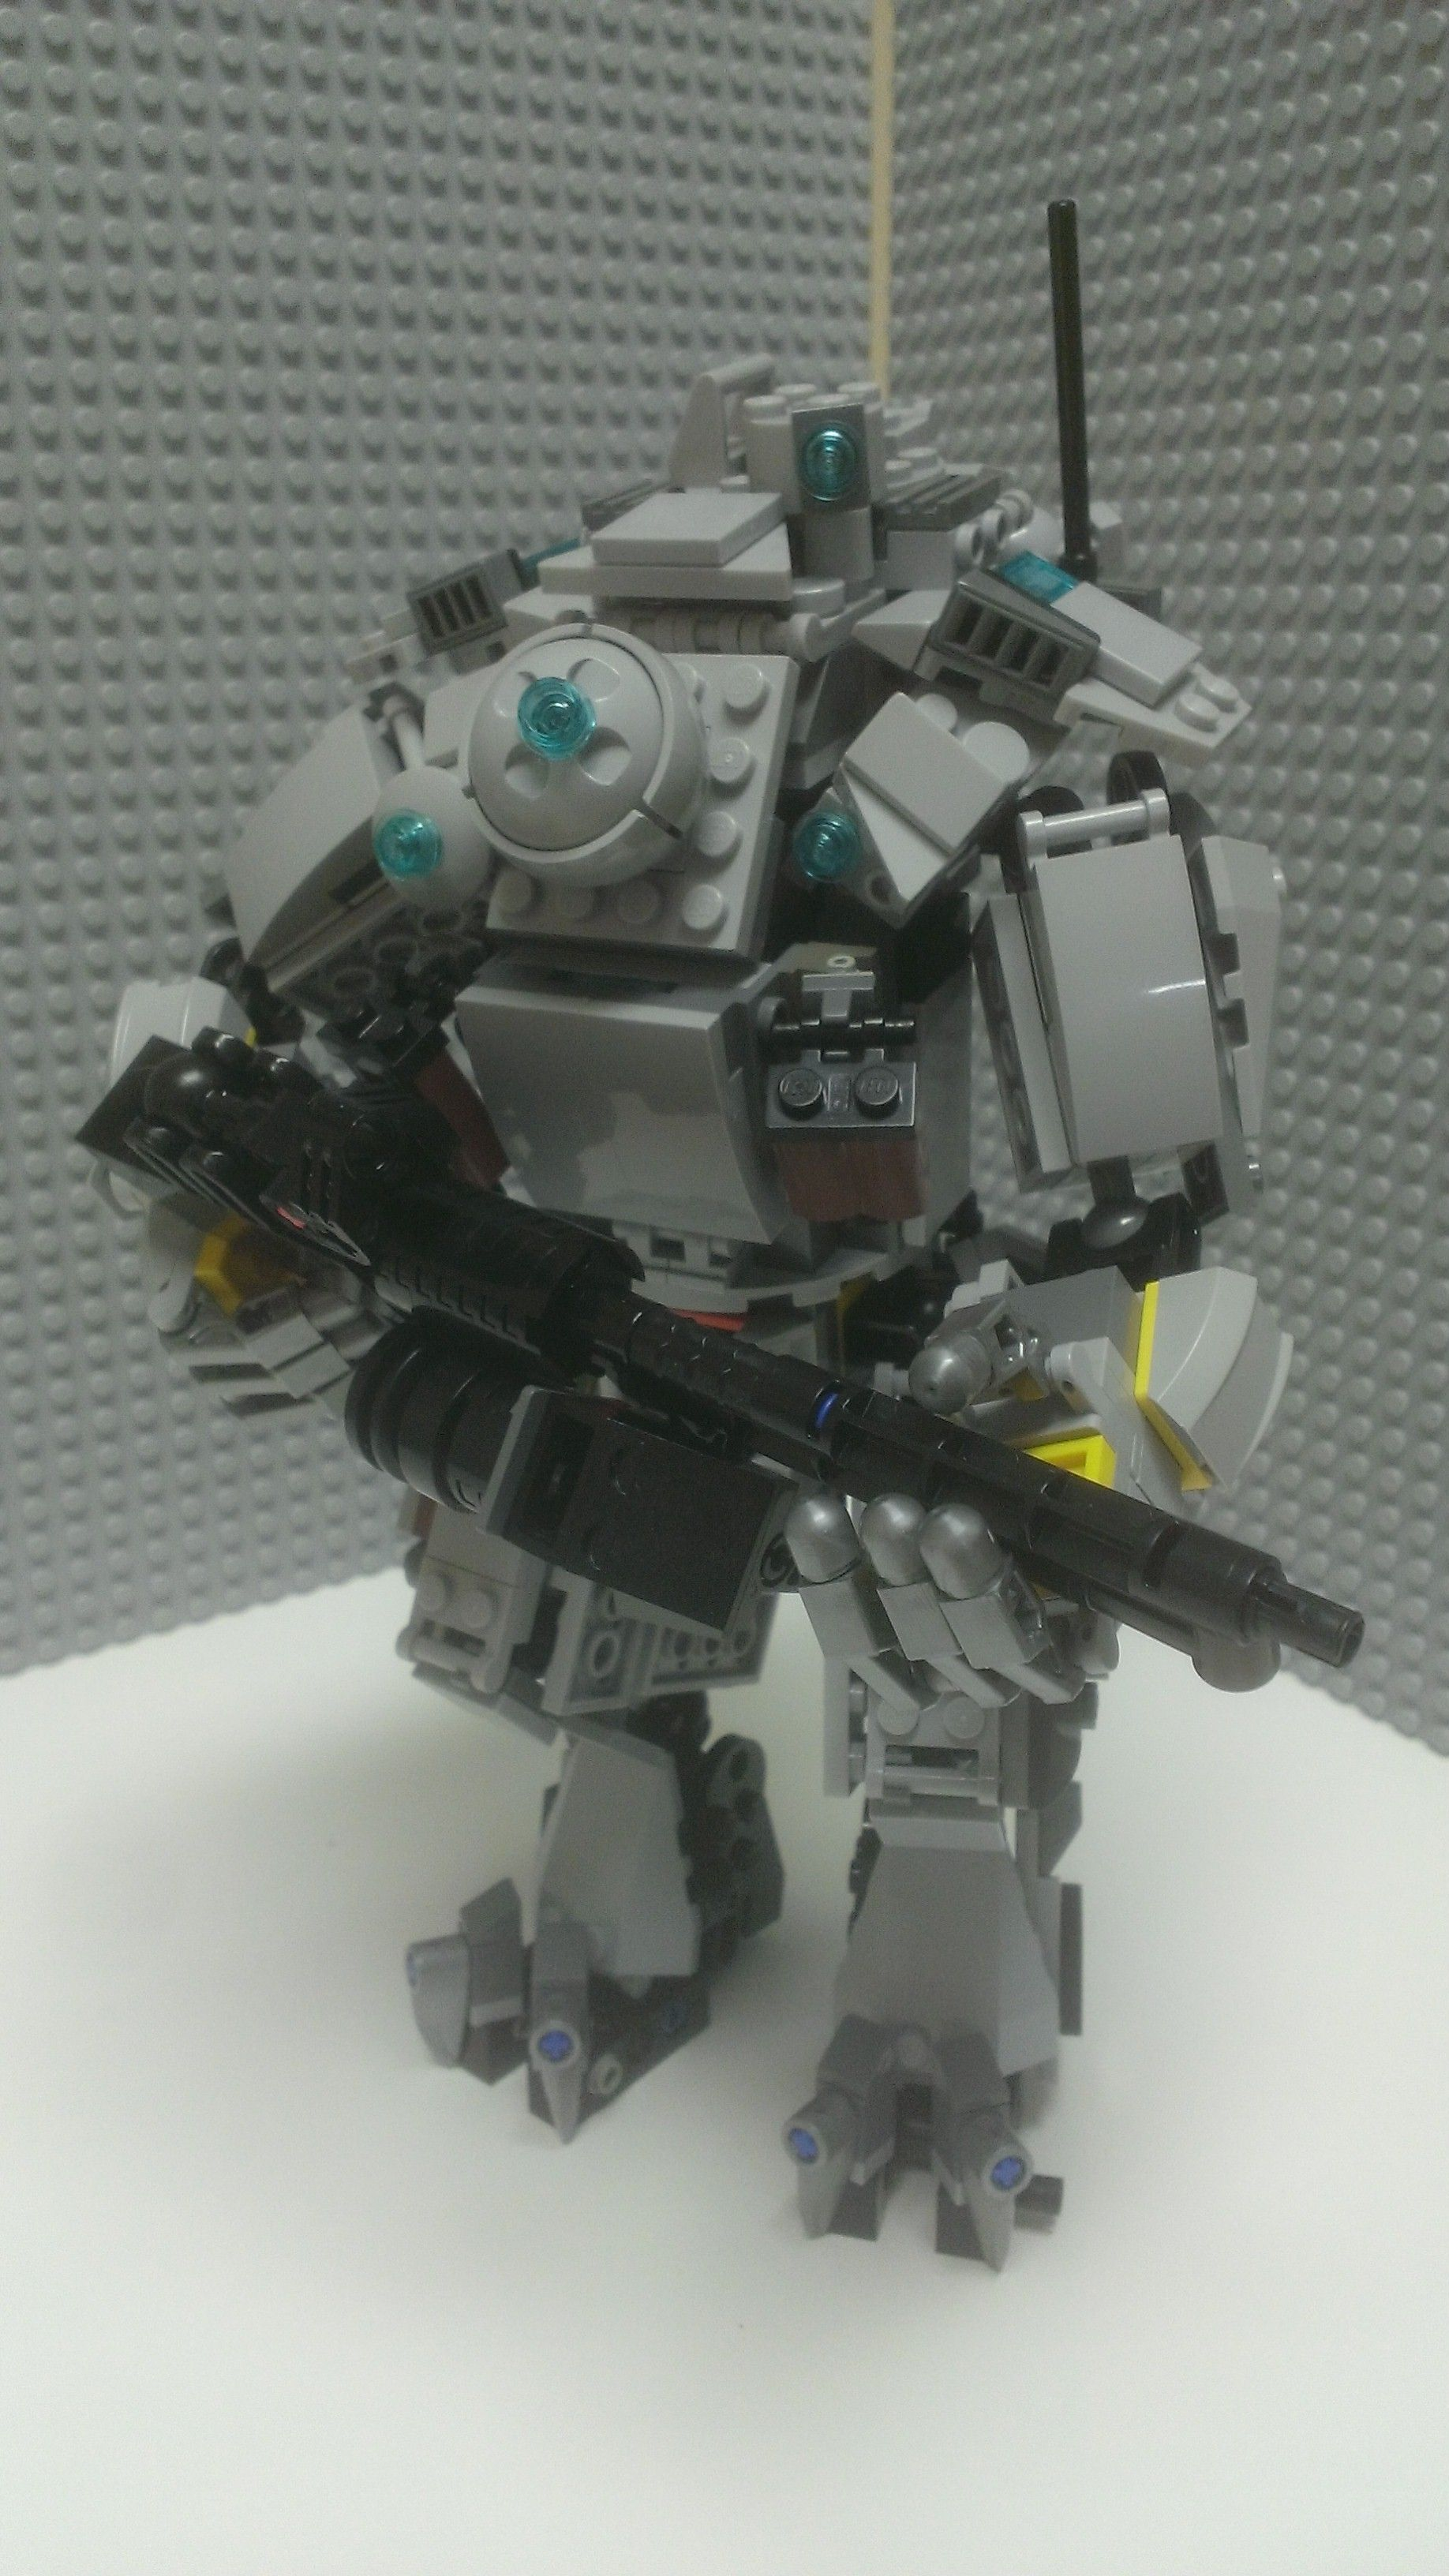 LEGO Titan | Video Game Art | Lego robot, Cool lego creations, Lego